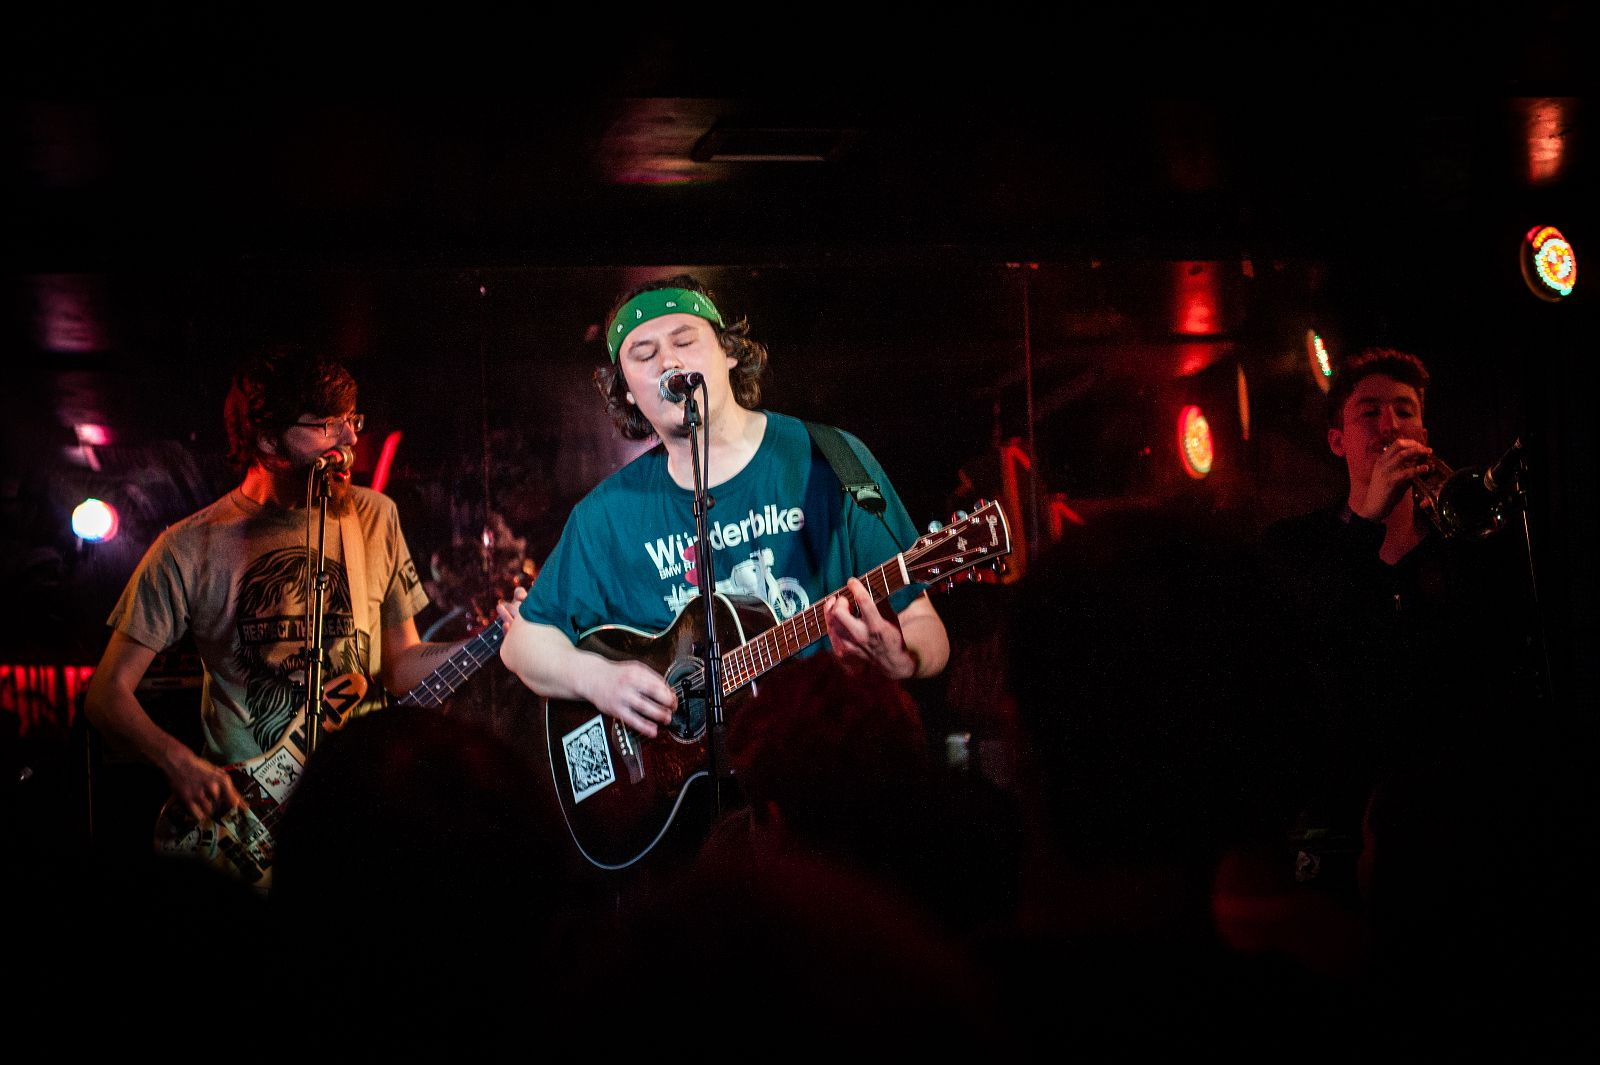 Montreal concerts in October 2015 include The Front Bottoms.